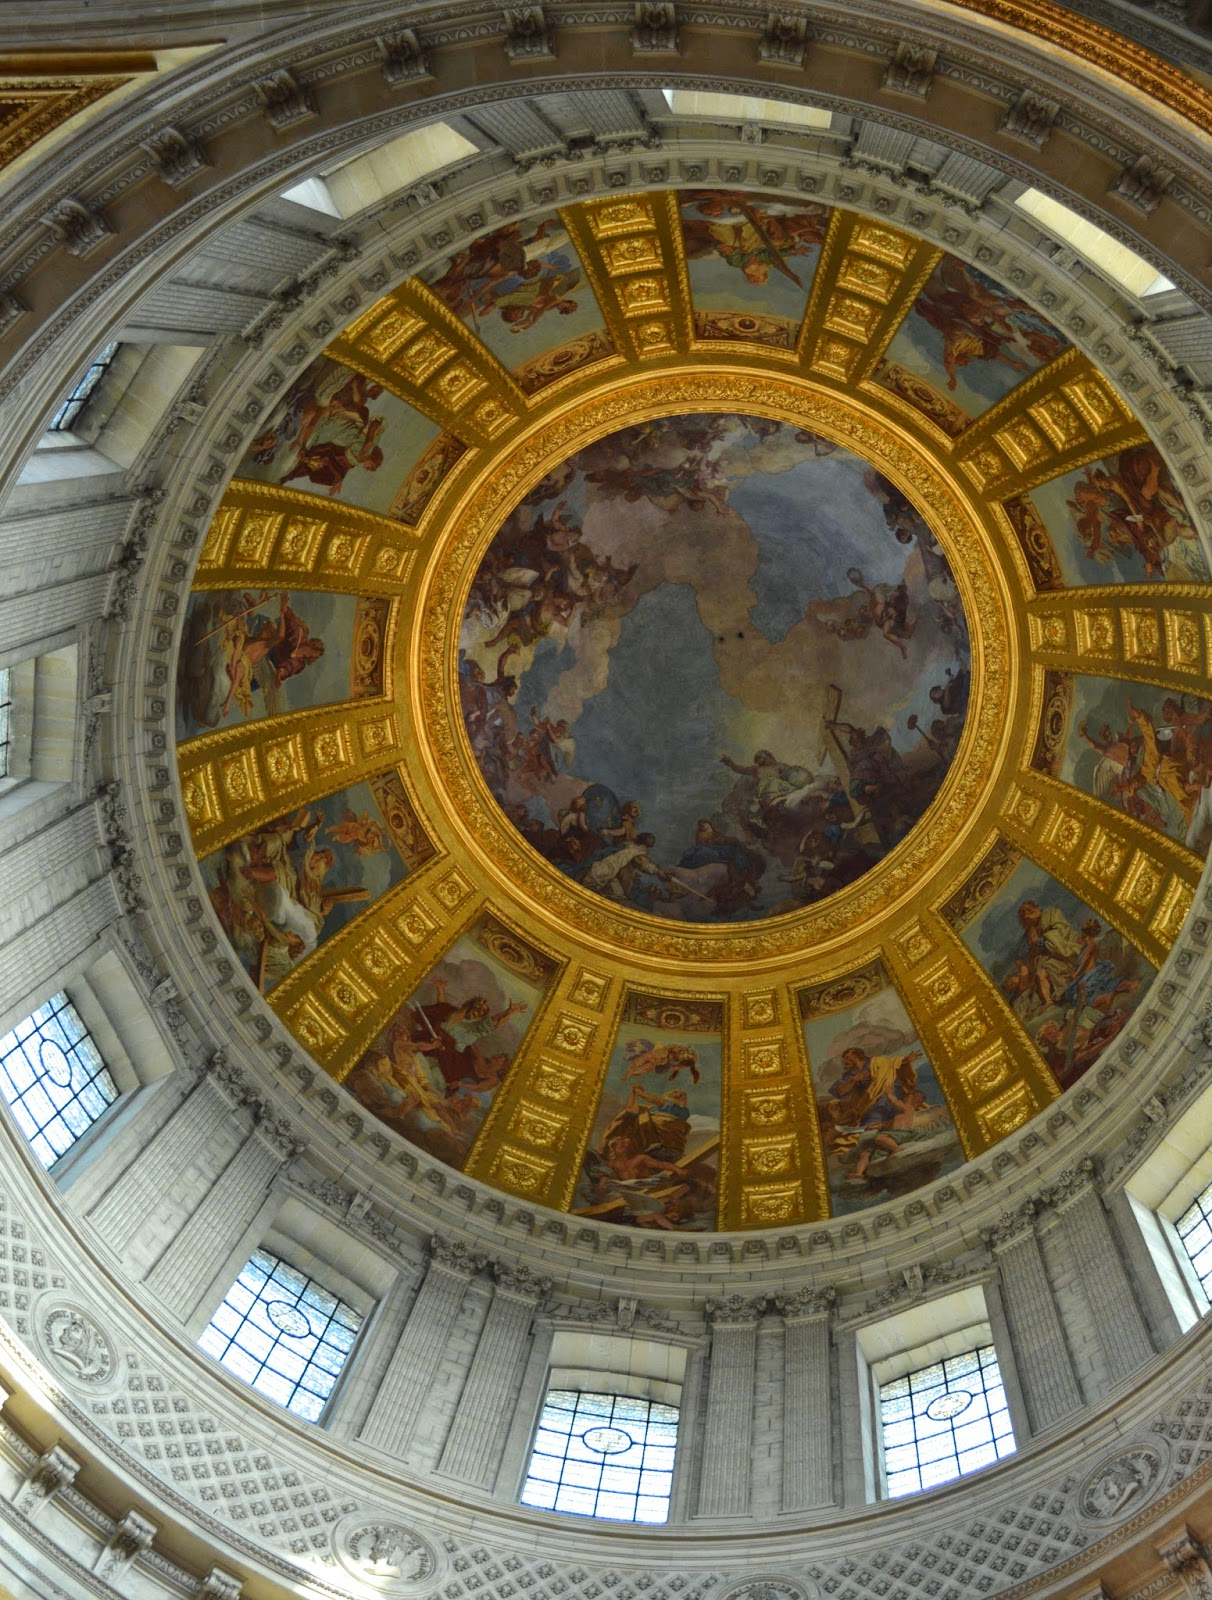 Les Invalides - The dome over the tomb of Napoleon